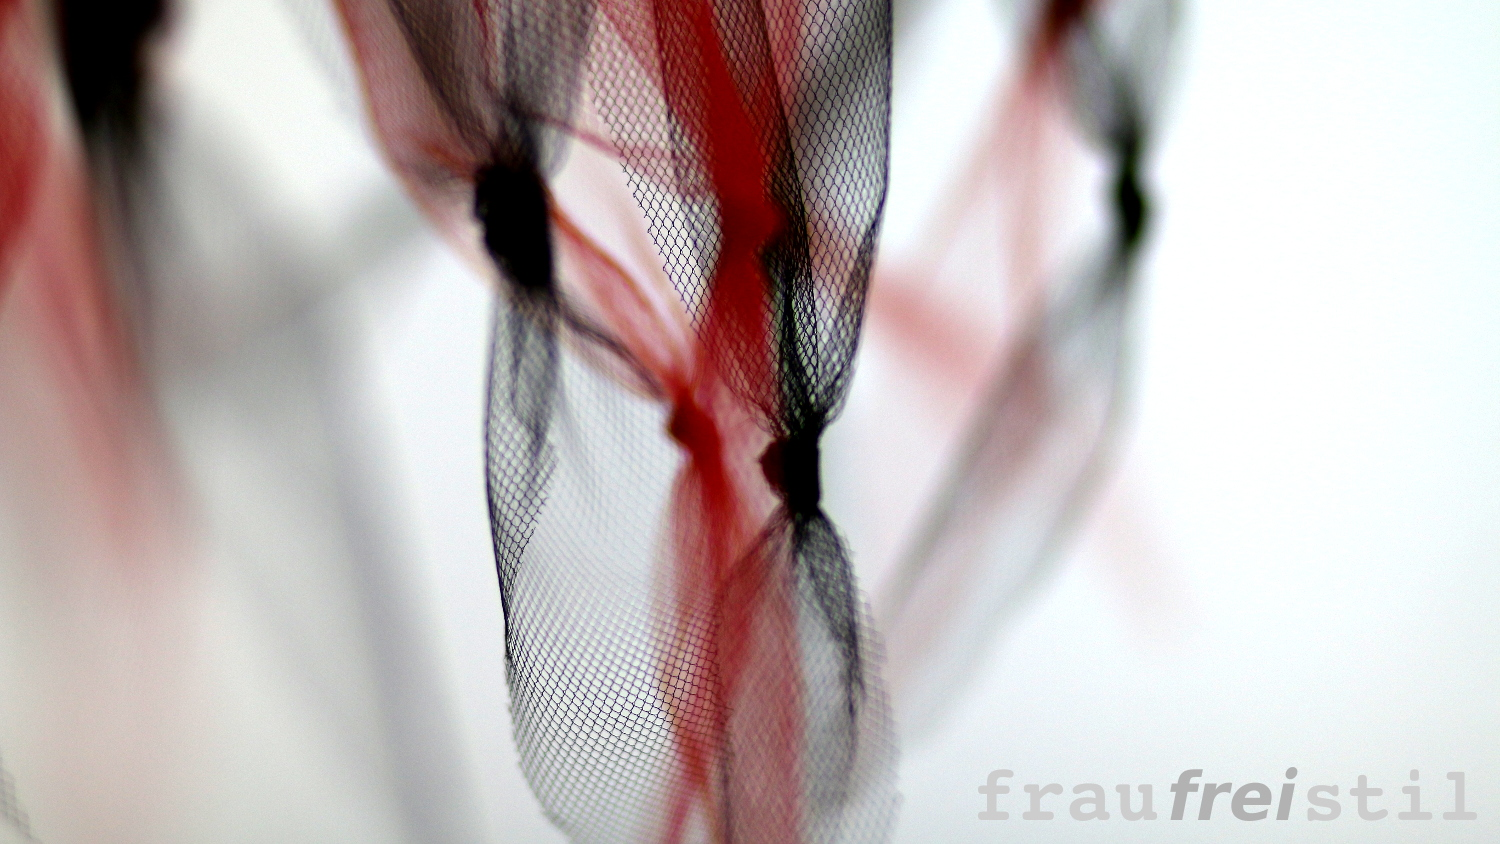 fraufreistil | a blog about sewing and other things that make life ...